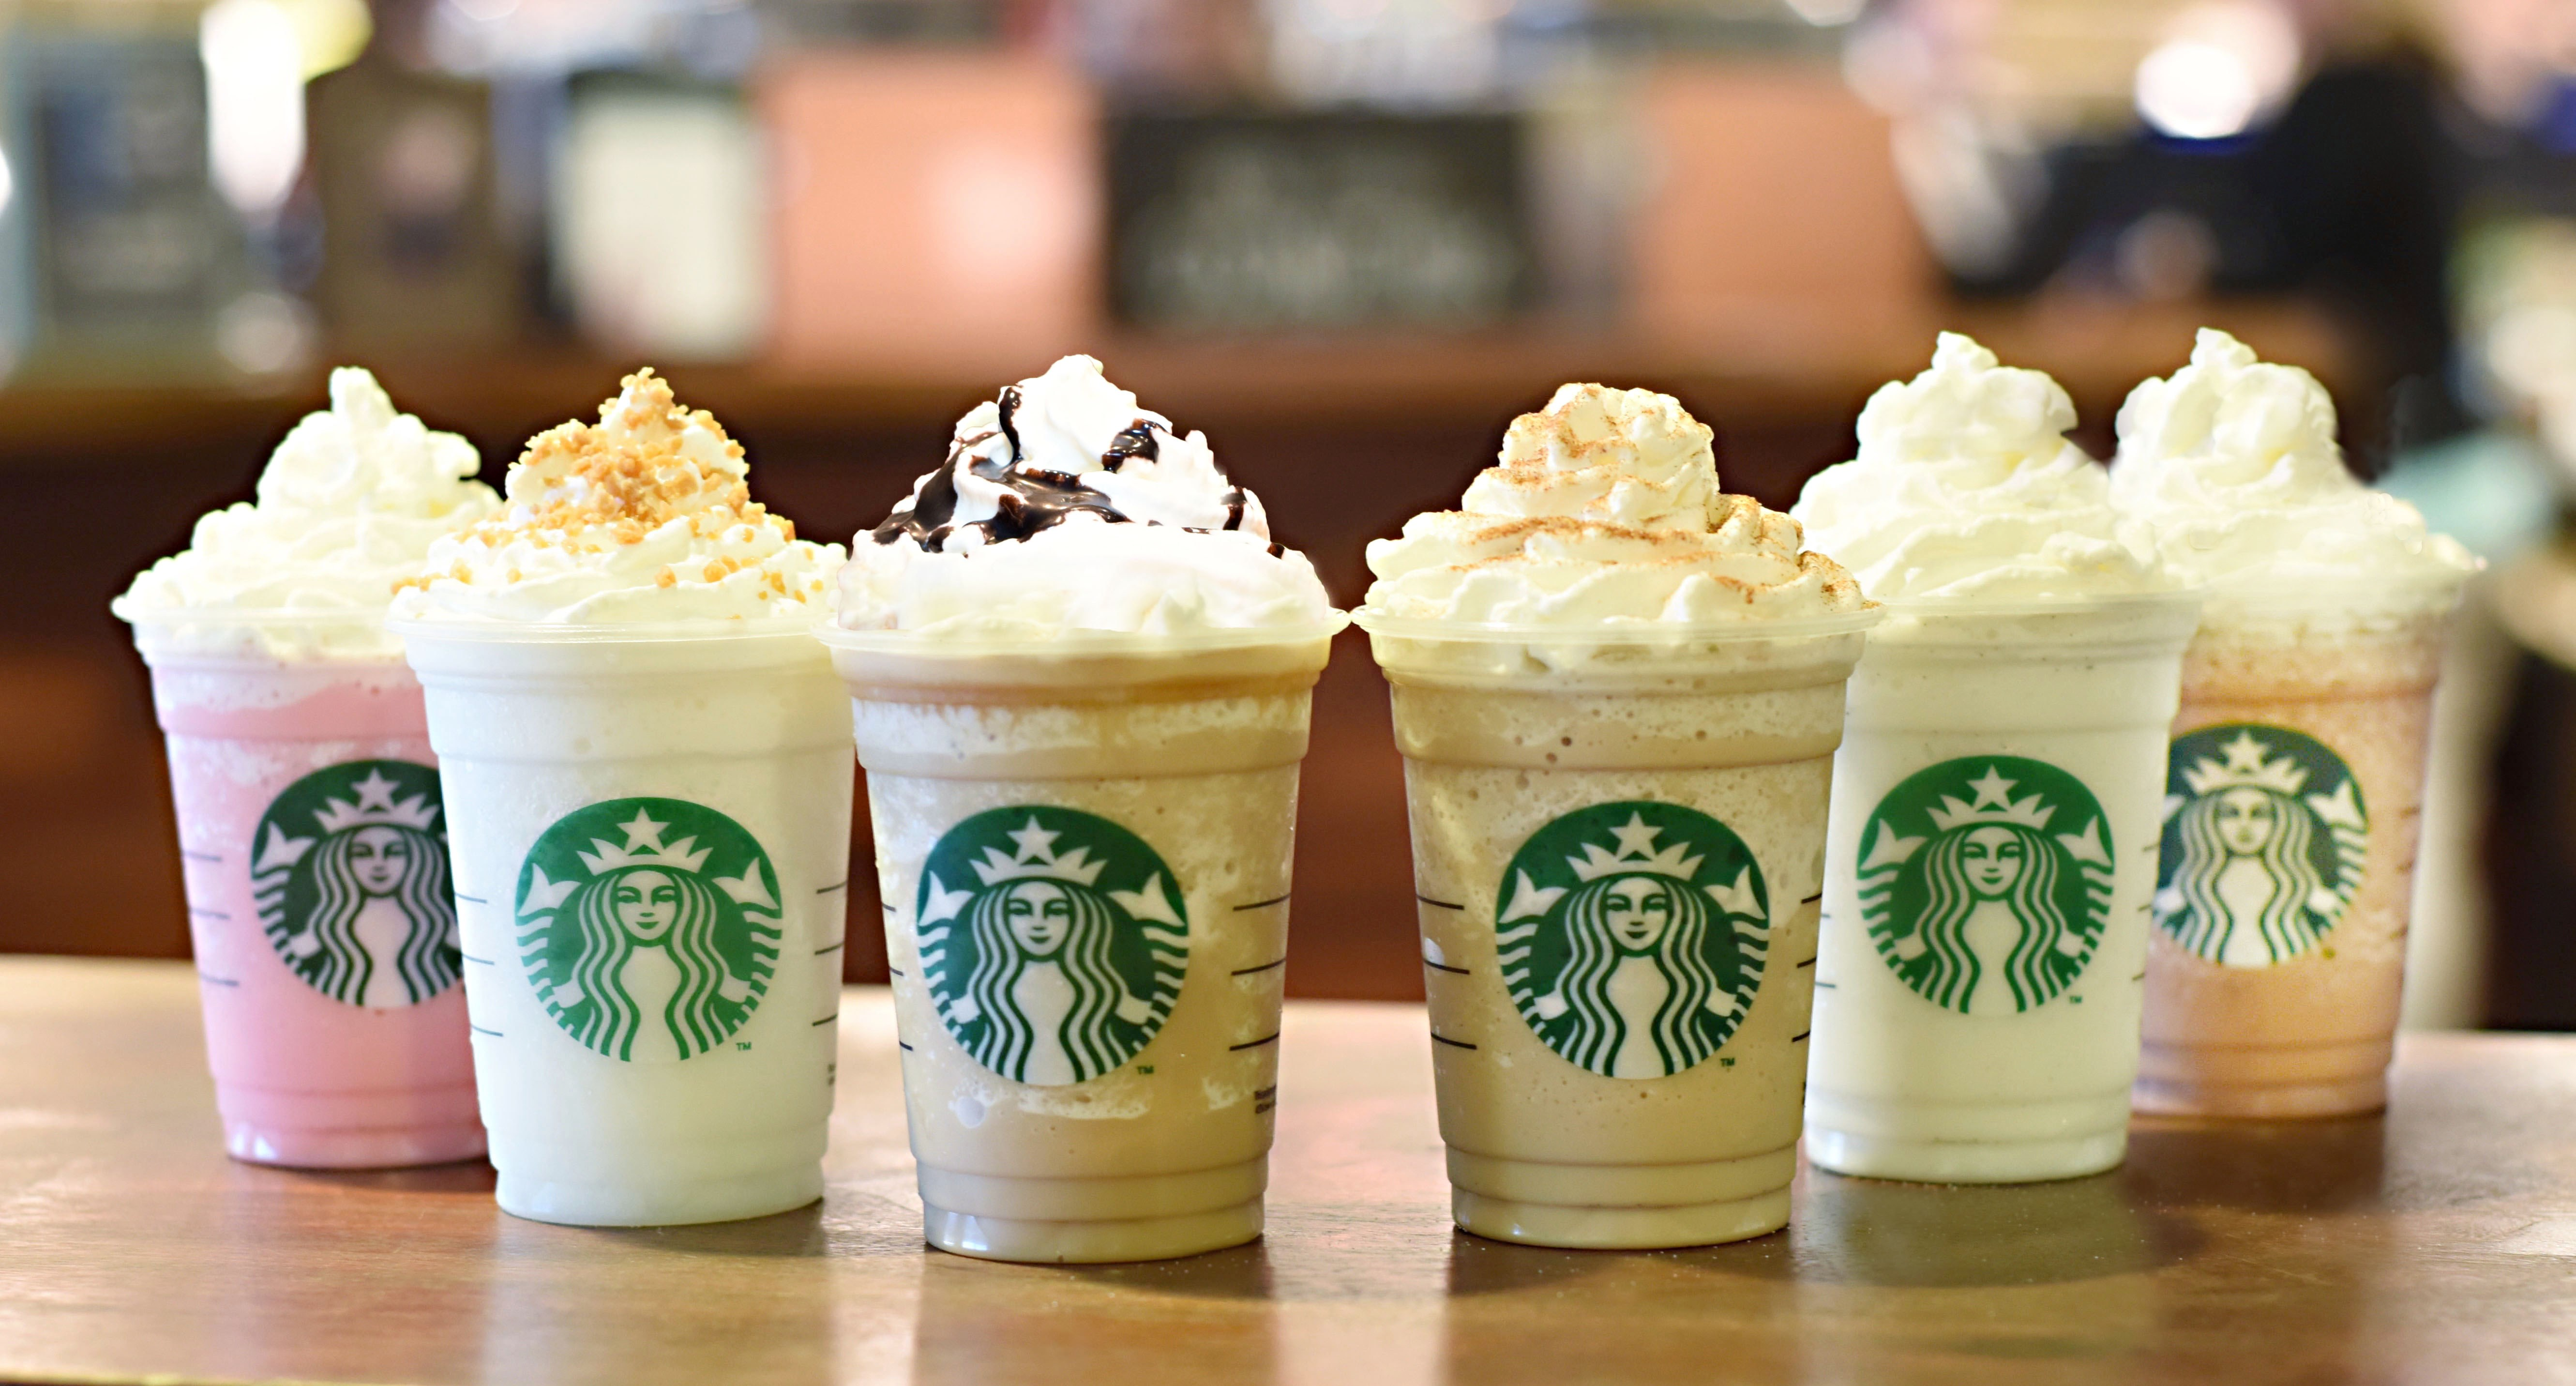 Frappuccino Starbucks Wallpaper in Six Cups of New Flavors HD